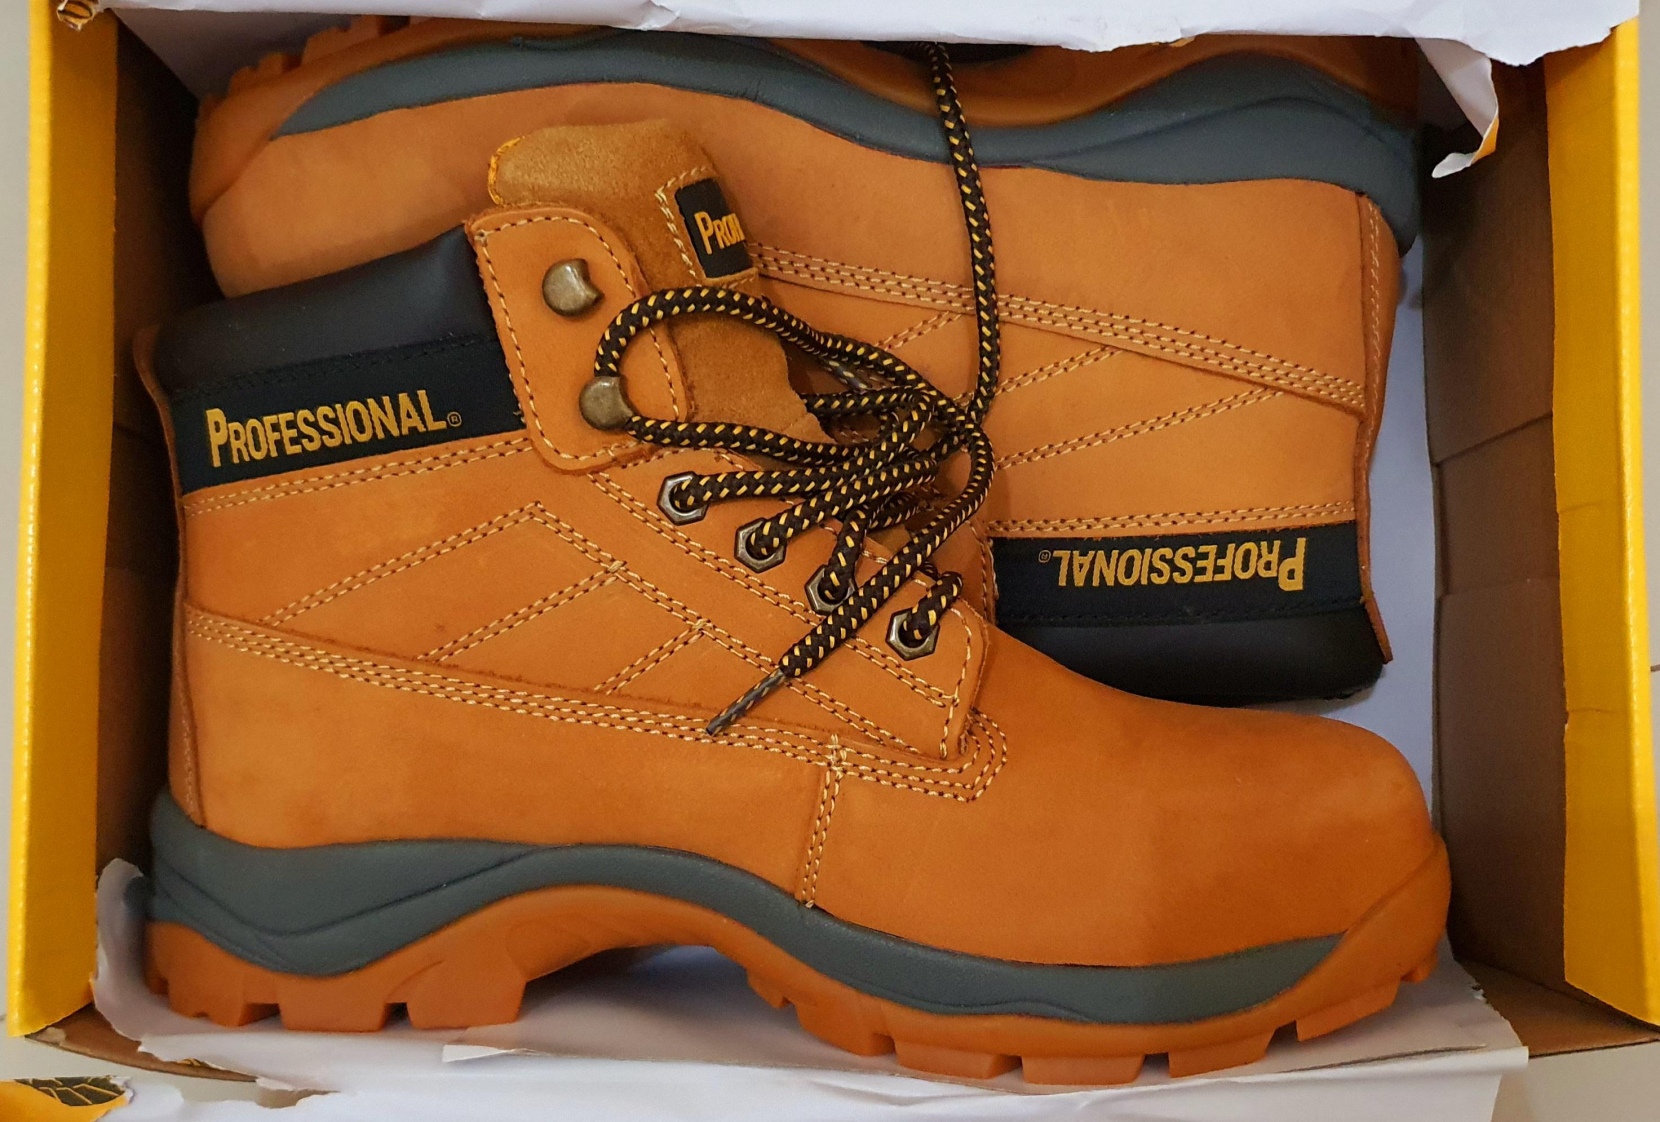 Brand new safety shoes / professional brand